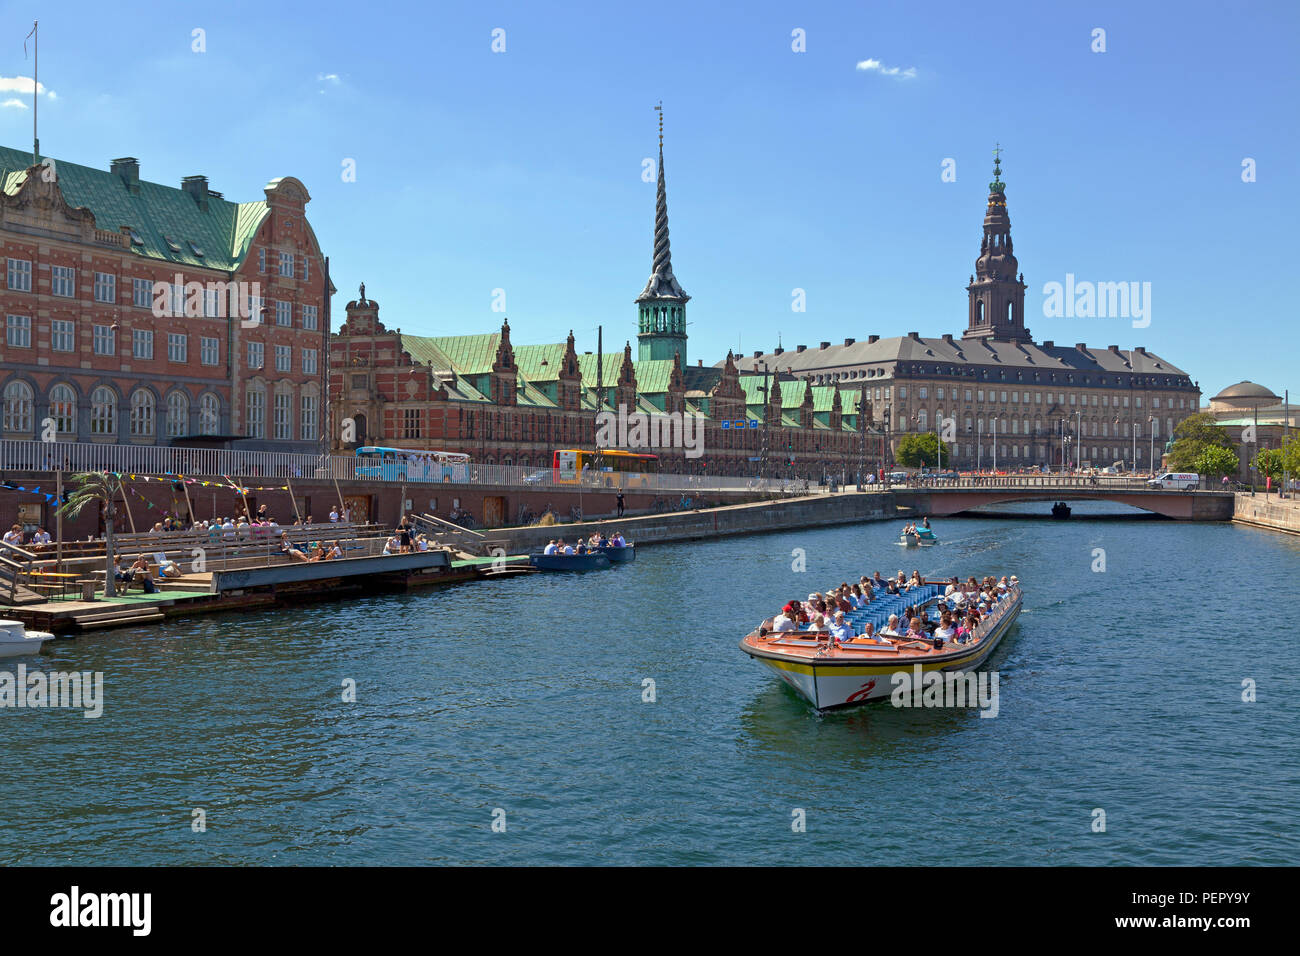 Canal cruise boat in Slotsholm Canal in Copenhagen. Christiansborg Castle, the Parliament,  the old stock exchange and dockside cafe and kayak rental.Stock Photo